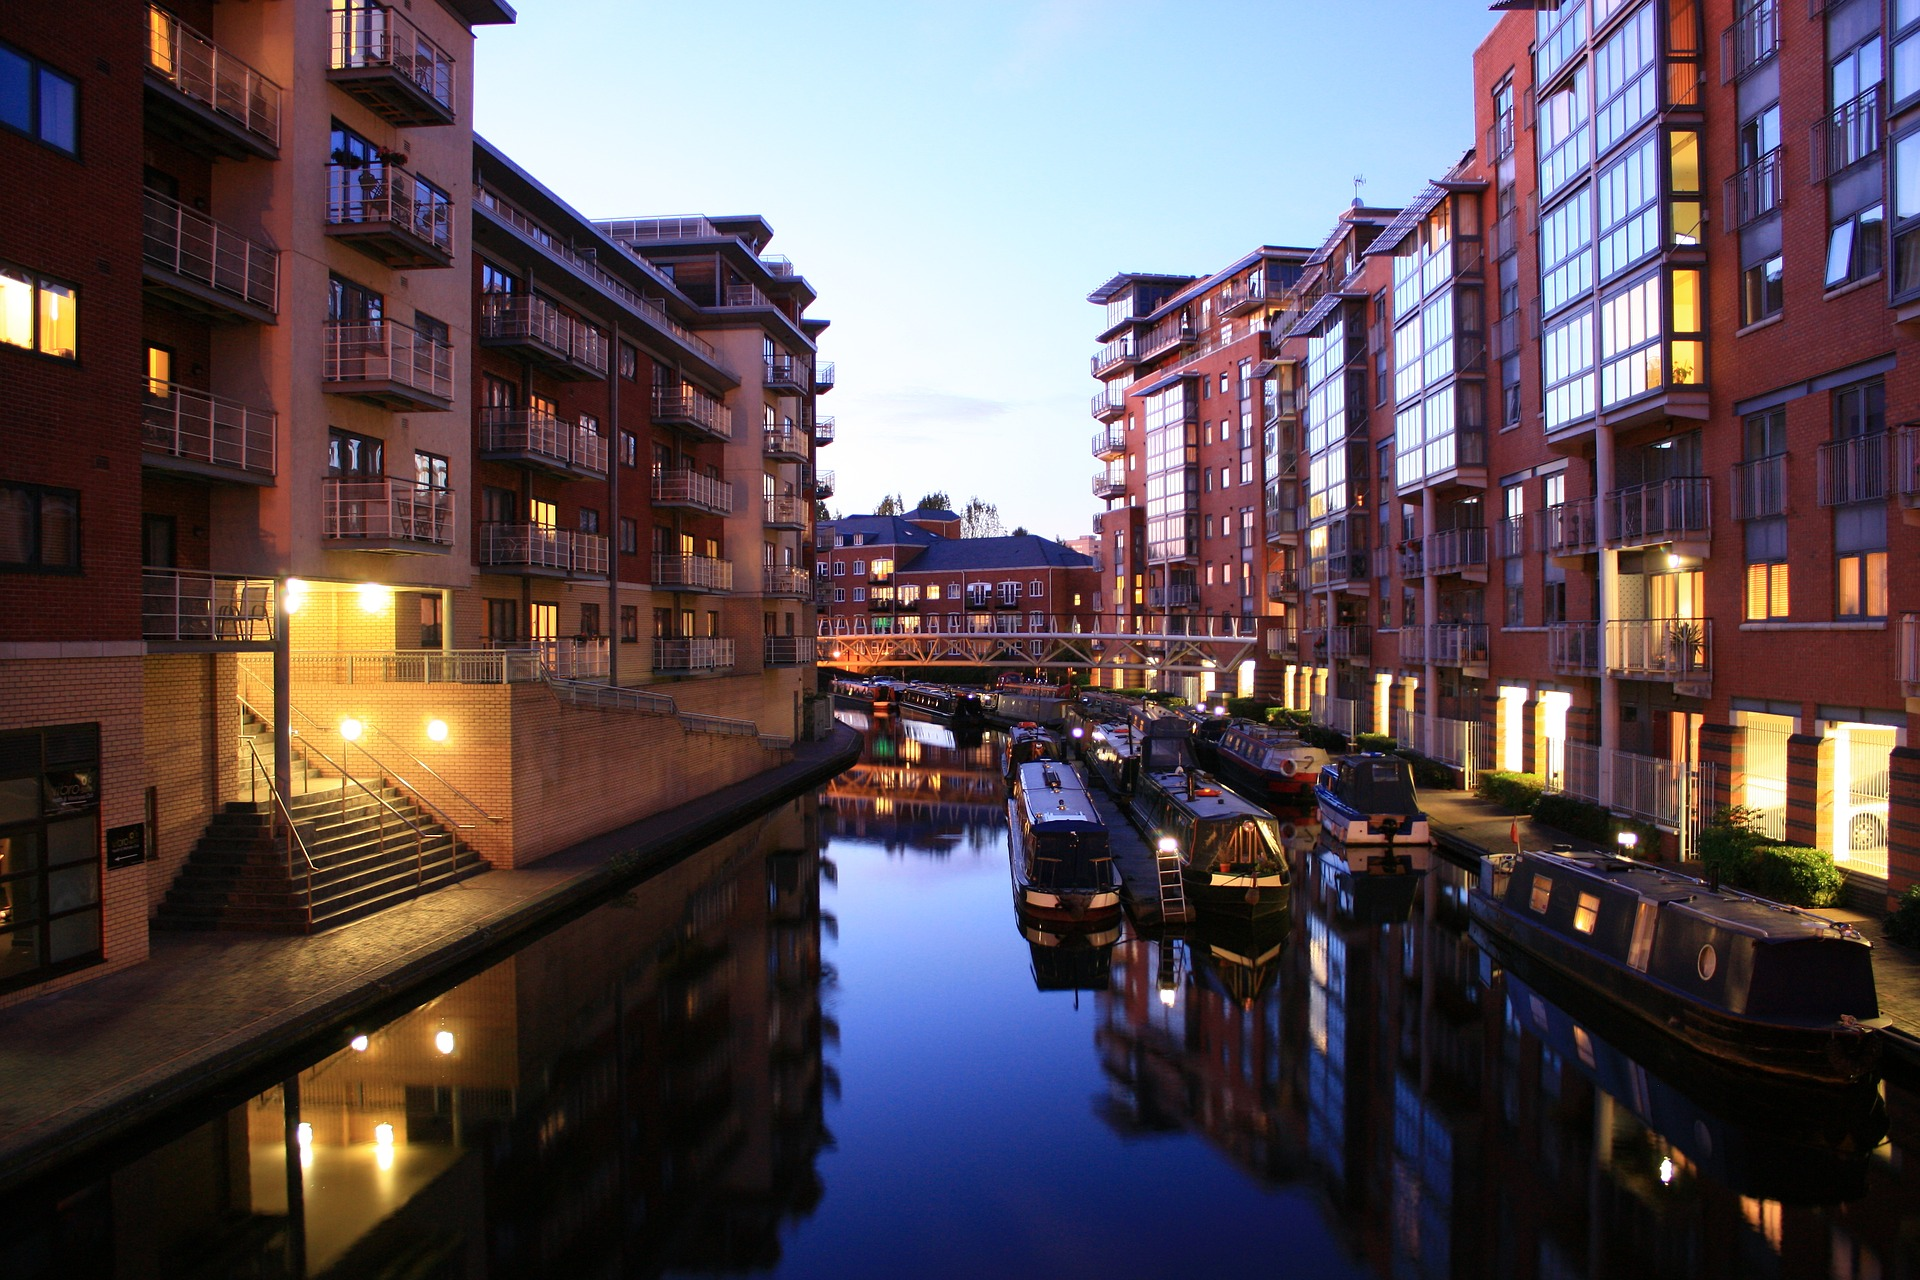 photo of birmingham canal at night